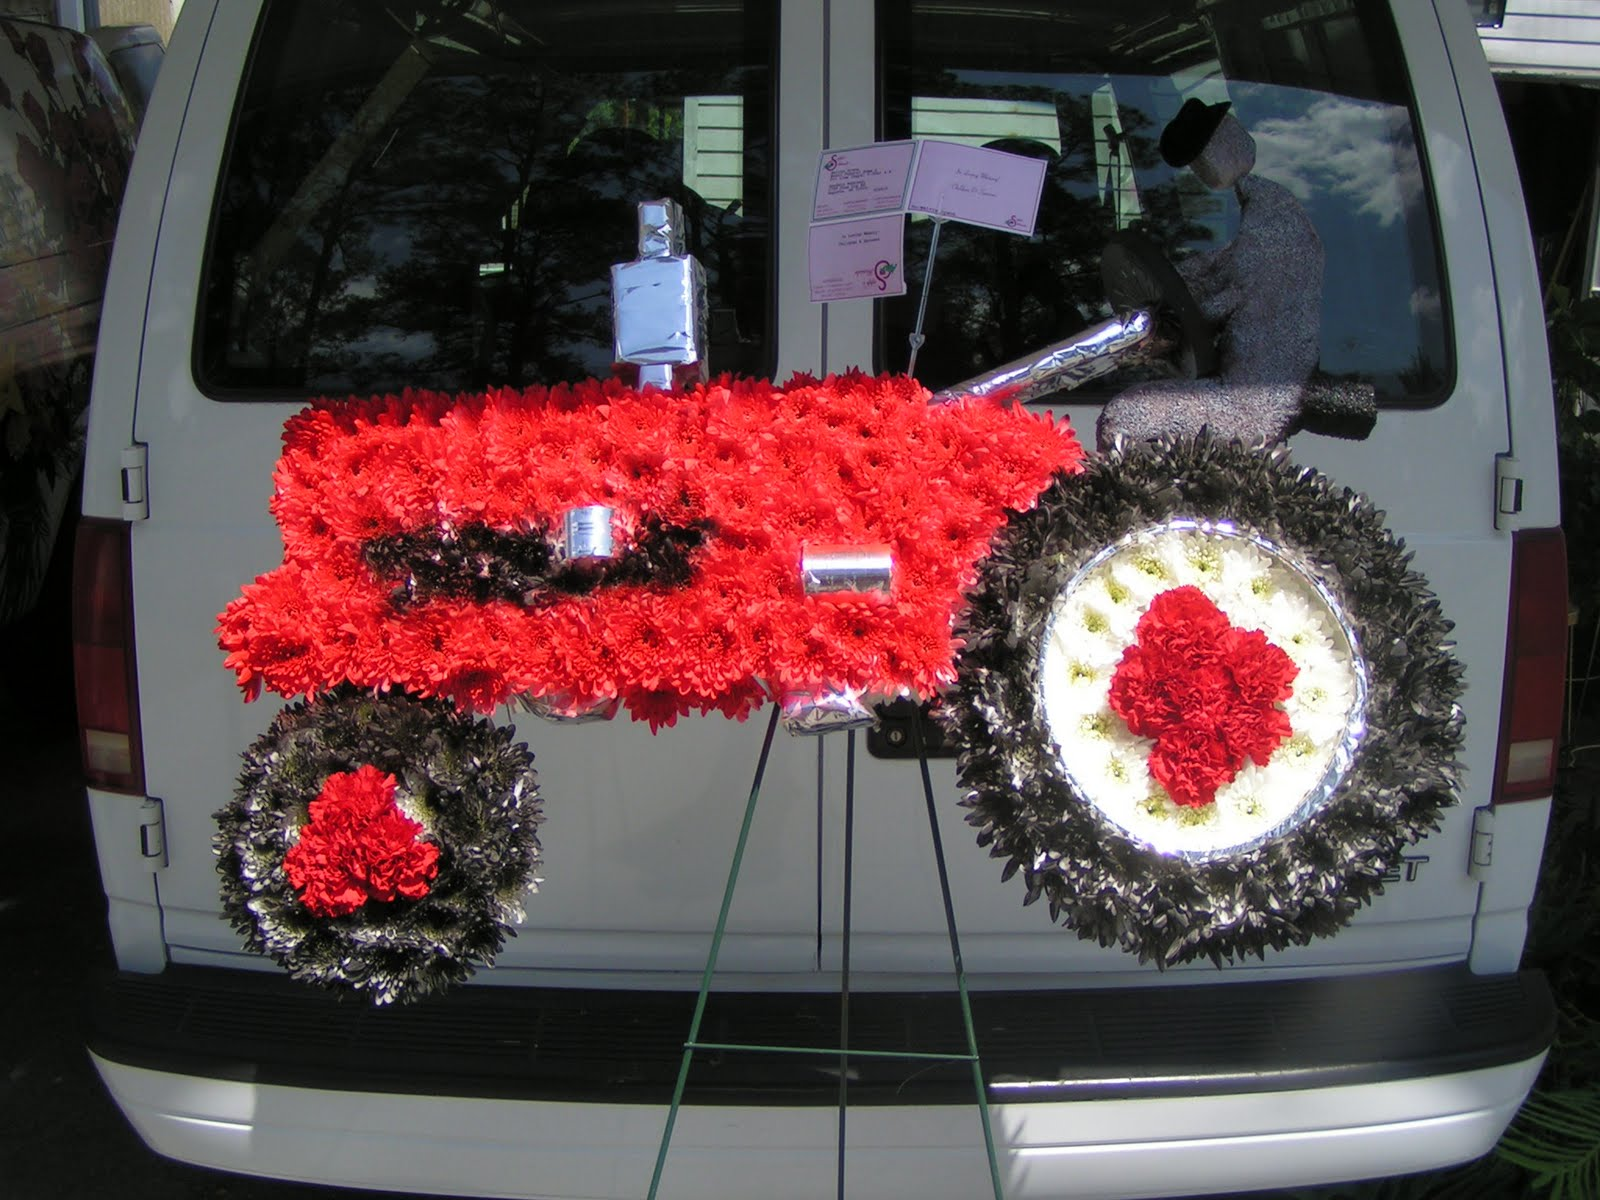 Sapps florist most unique designs of the day red tractor made of it at your funeral service family members are comforted by remembering the things we enjoyed most in life why not place a remembrance that reminds you izmirmasajfo